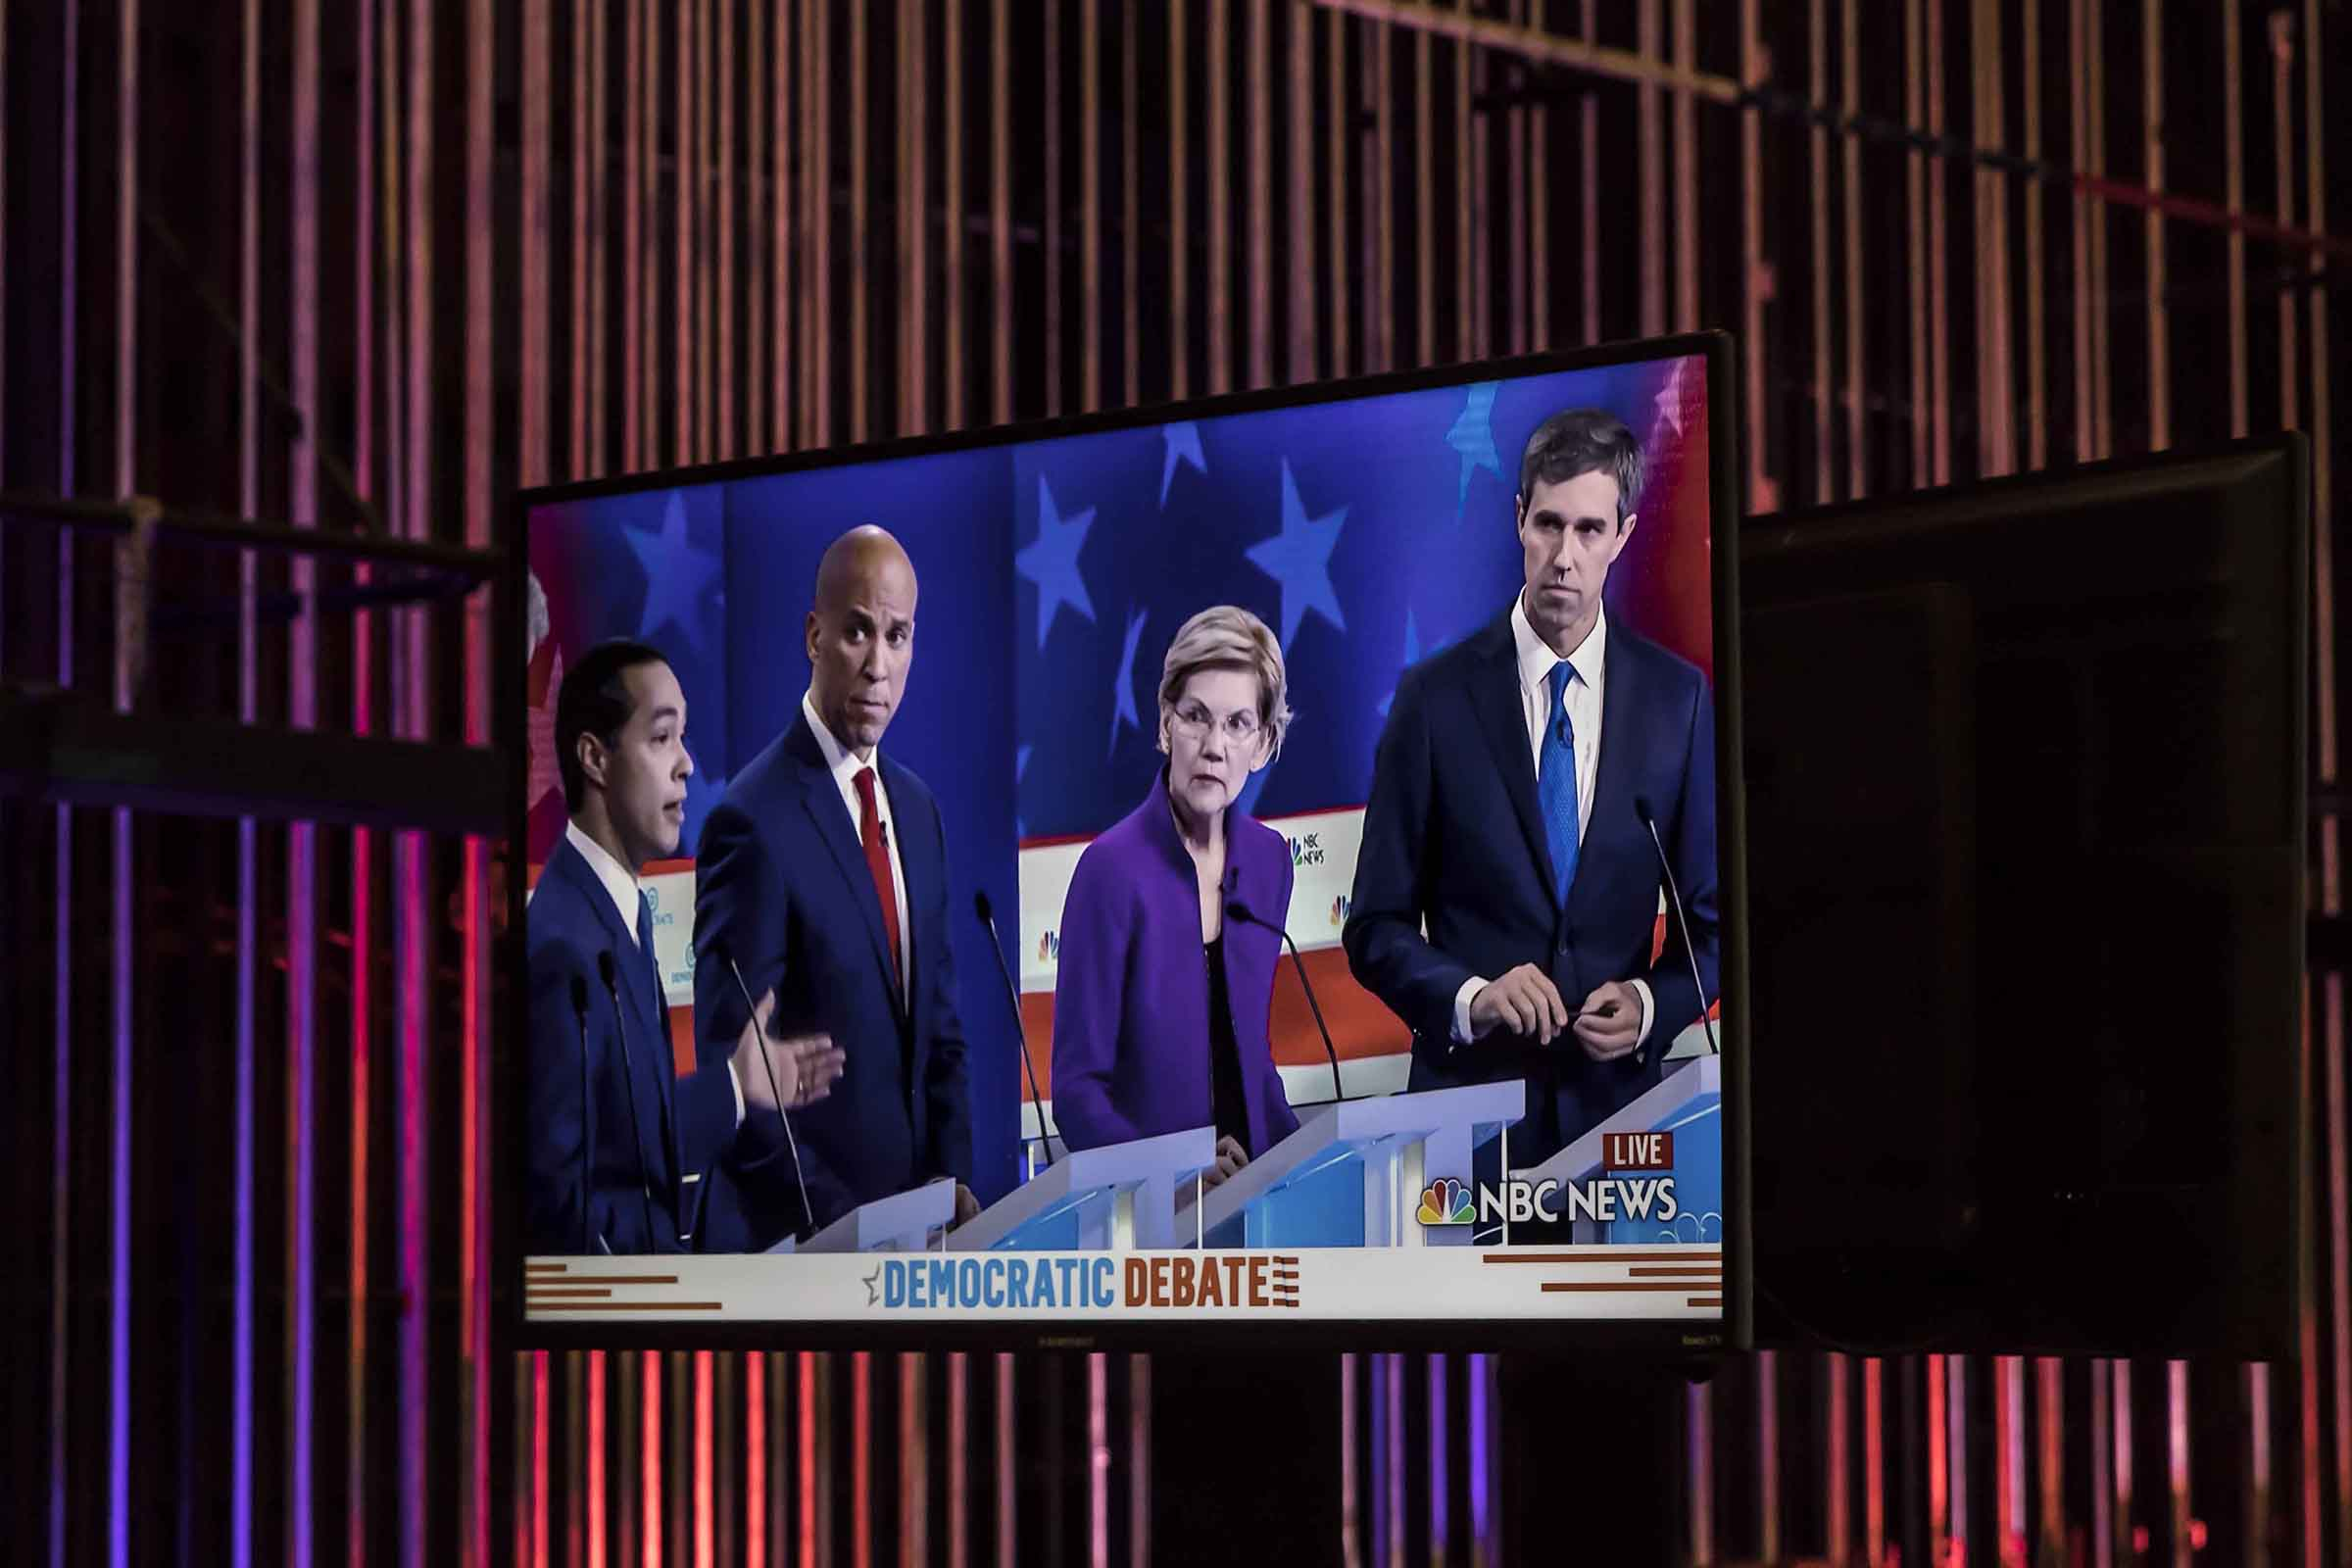 Democratic presidential hopefuls (L-R) former housing secretary Julian Castro, Sen. Cory Booker (D-NJ), Sen. Elizabeth Warren (D-MA), former Texas congressman Beto O'Rourke are shown on a screen in the spin room during the first Democratic primary debate of the 2020 presidential campaign season hosted by NBC News at the Adrienne Arsht Center for the Performing Arts in Miami, Florida, June 26, 2019.